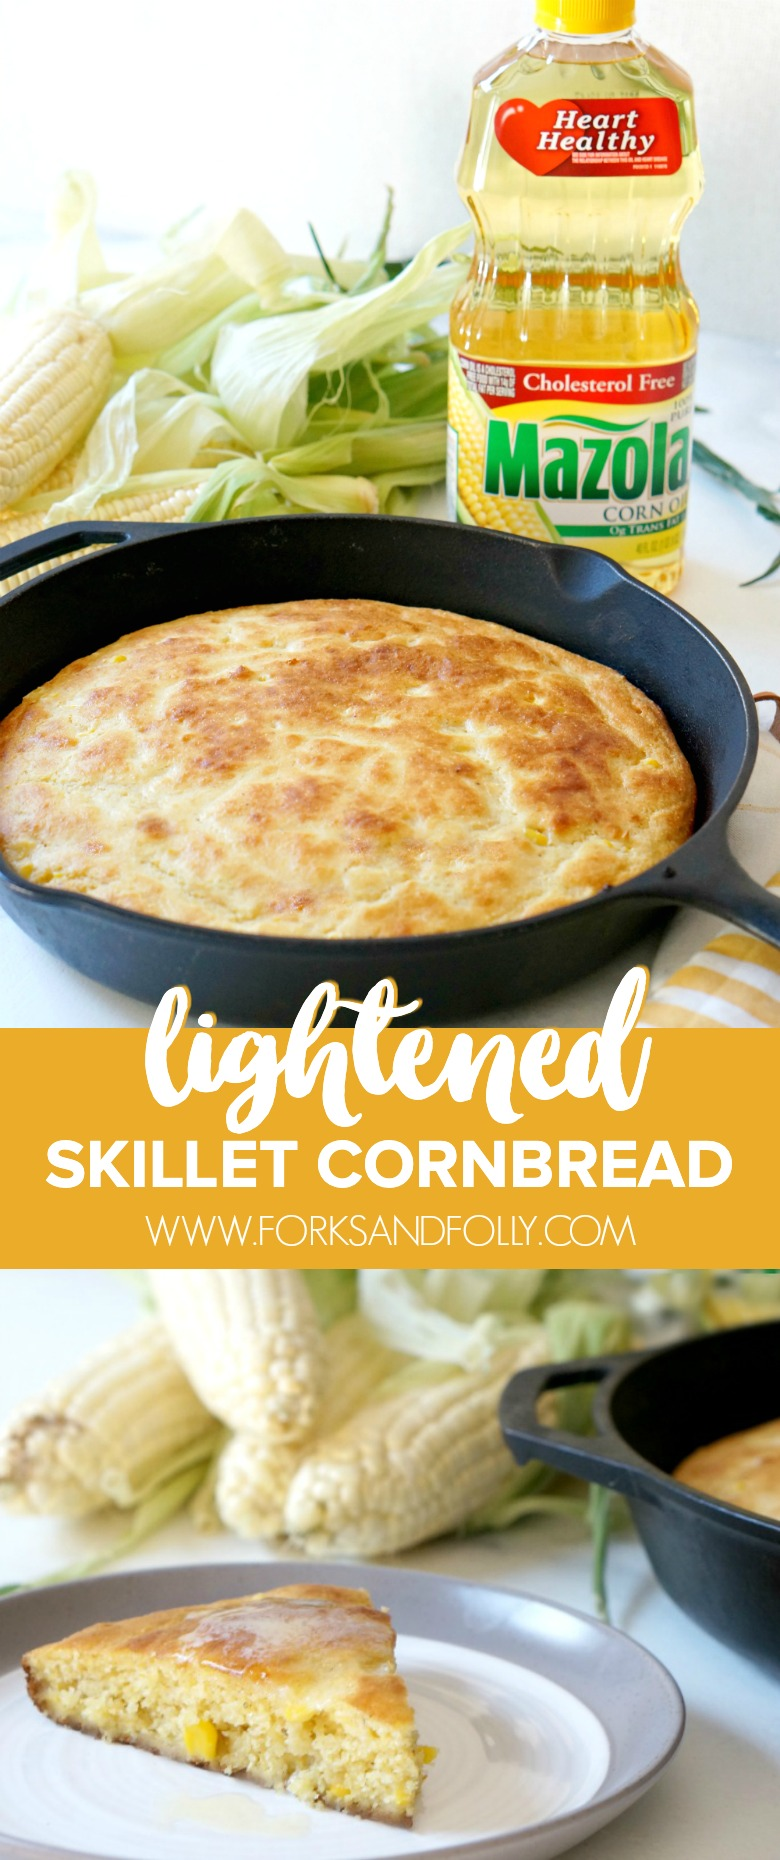 This Lightened Skillet Cornbread is a must-make recipe for this fall!  Serve it with chili on game day or a a Thanksgiving side!